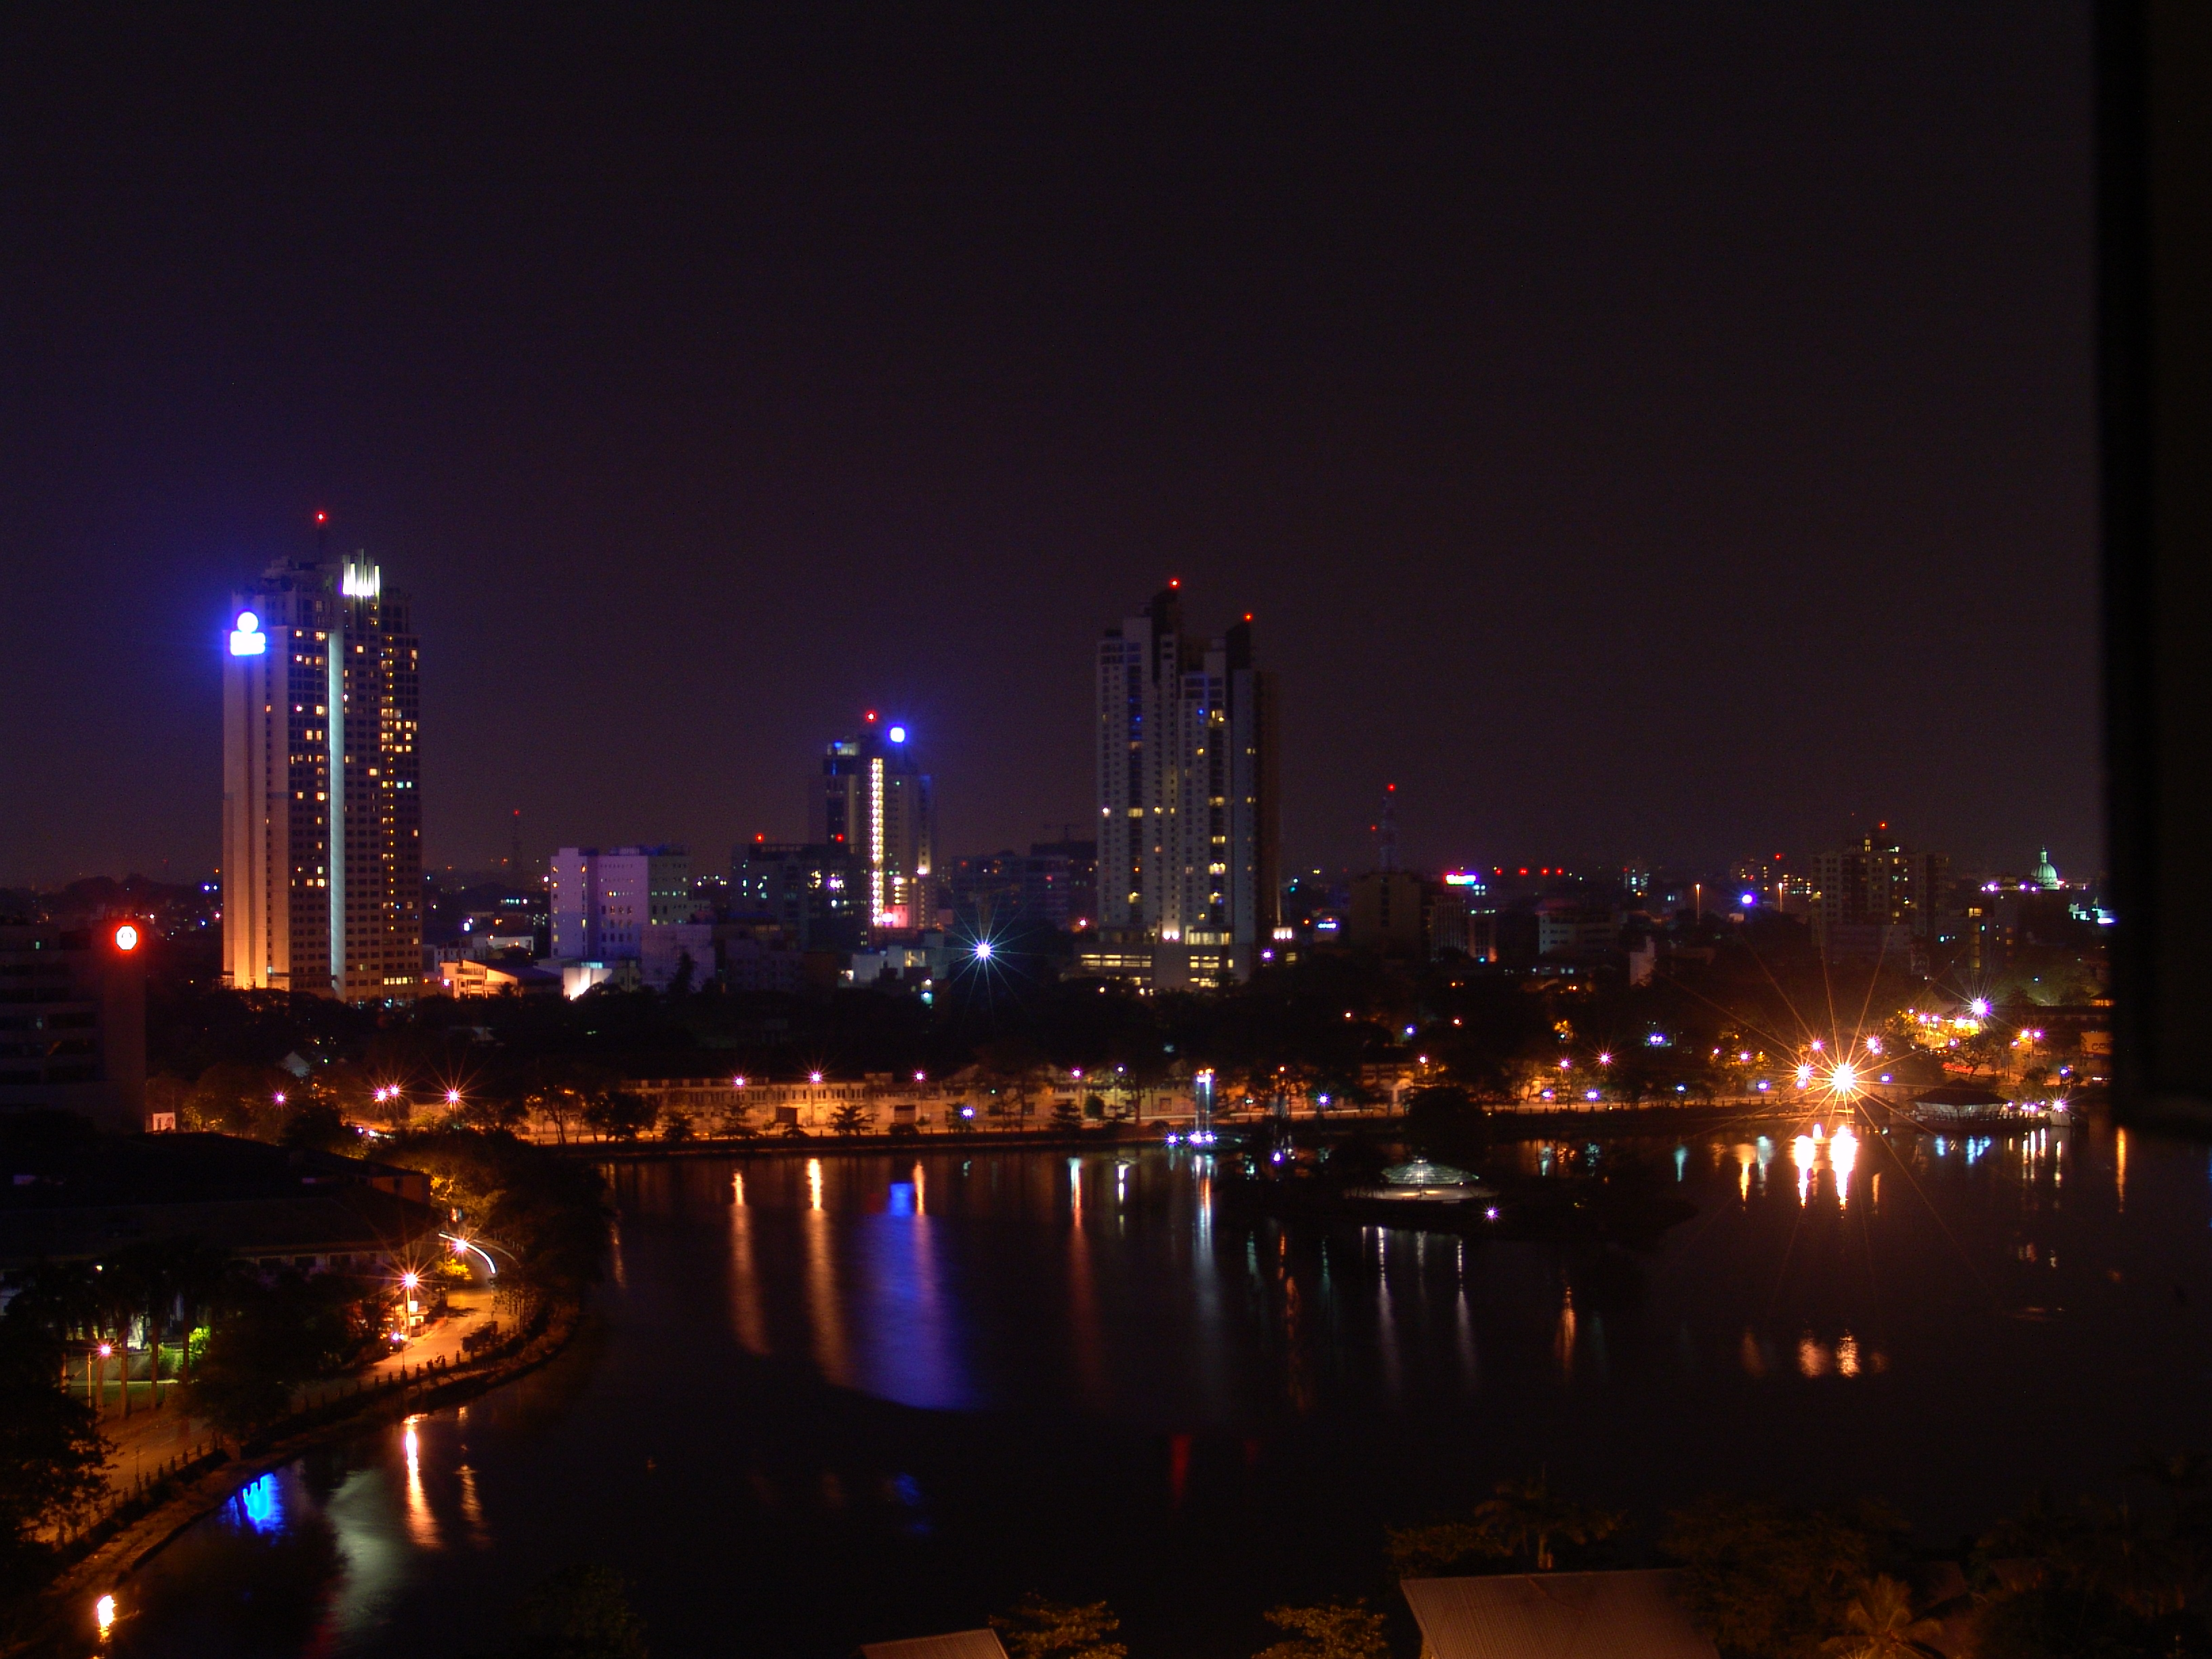 Colombo at night